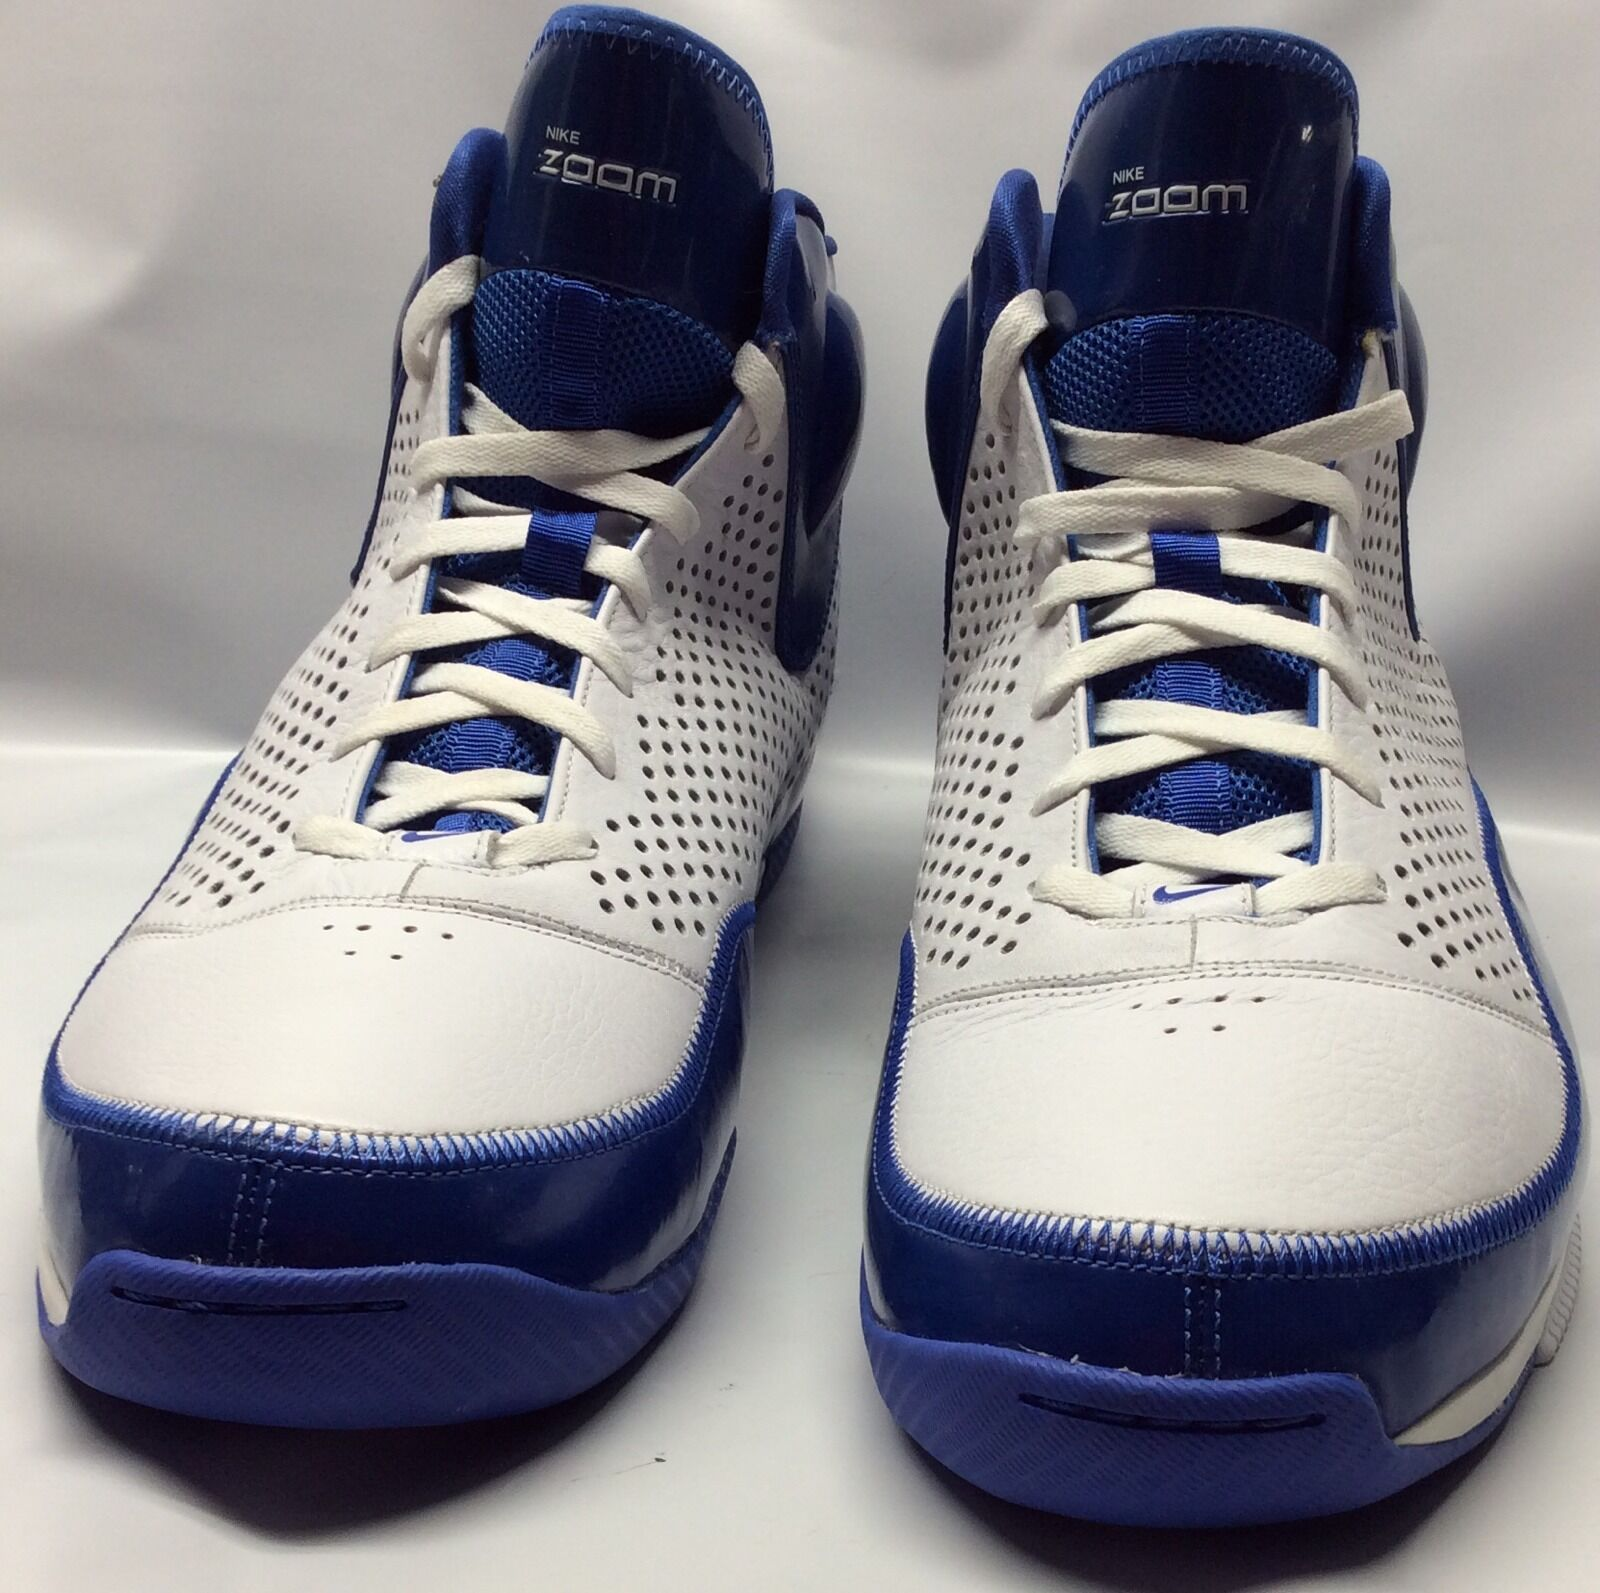 Nike Zoom Mid High Basketball Shoes White/Blue US 18